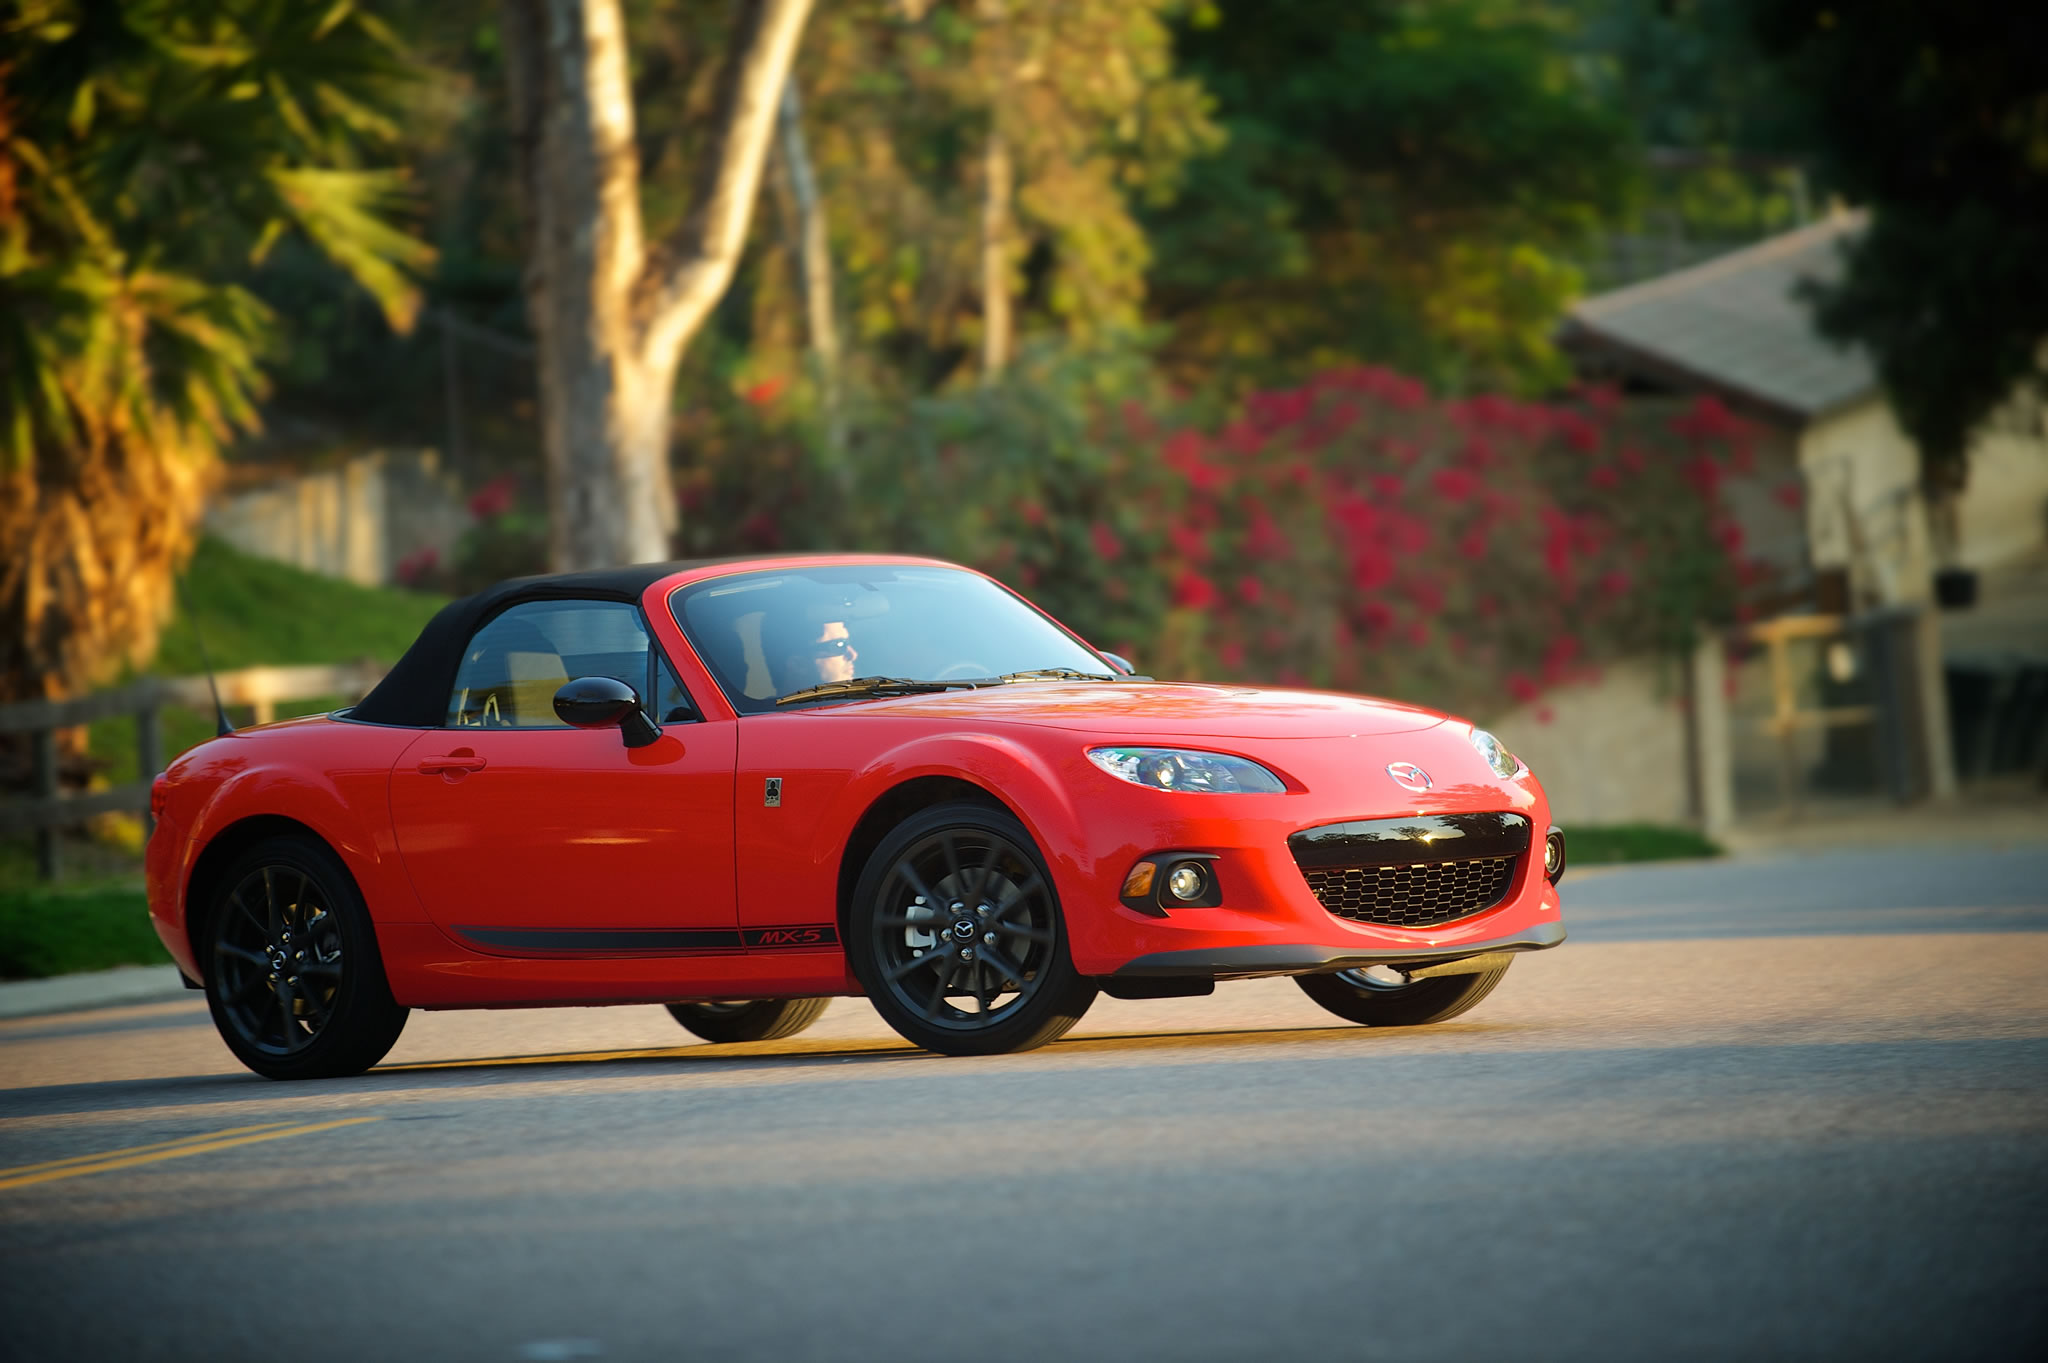 2015 mazda mx 5 miata club front photo true red color size 2048 x 1363 nr 14 29. Black Bedroom Furniture Sets. Home Design Ideas